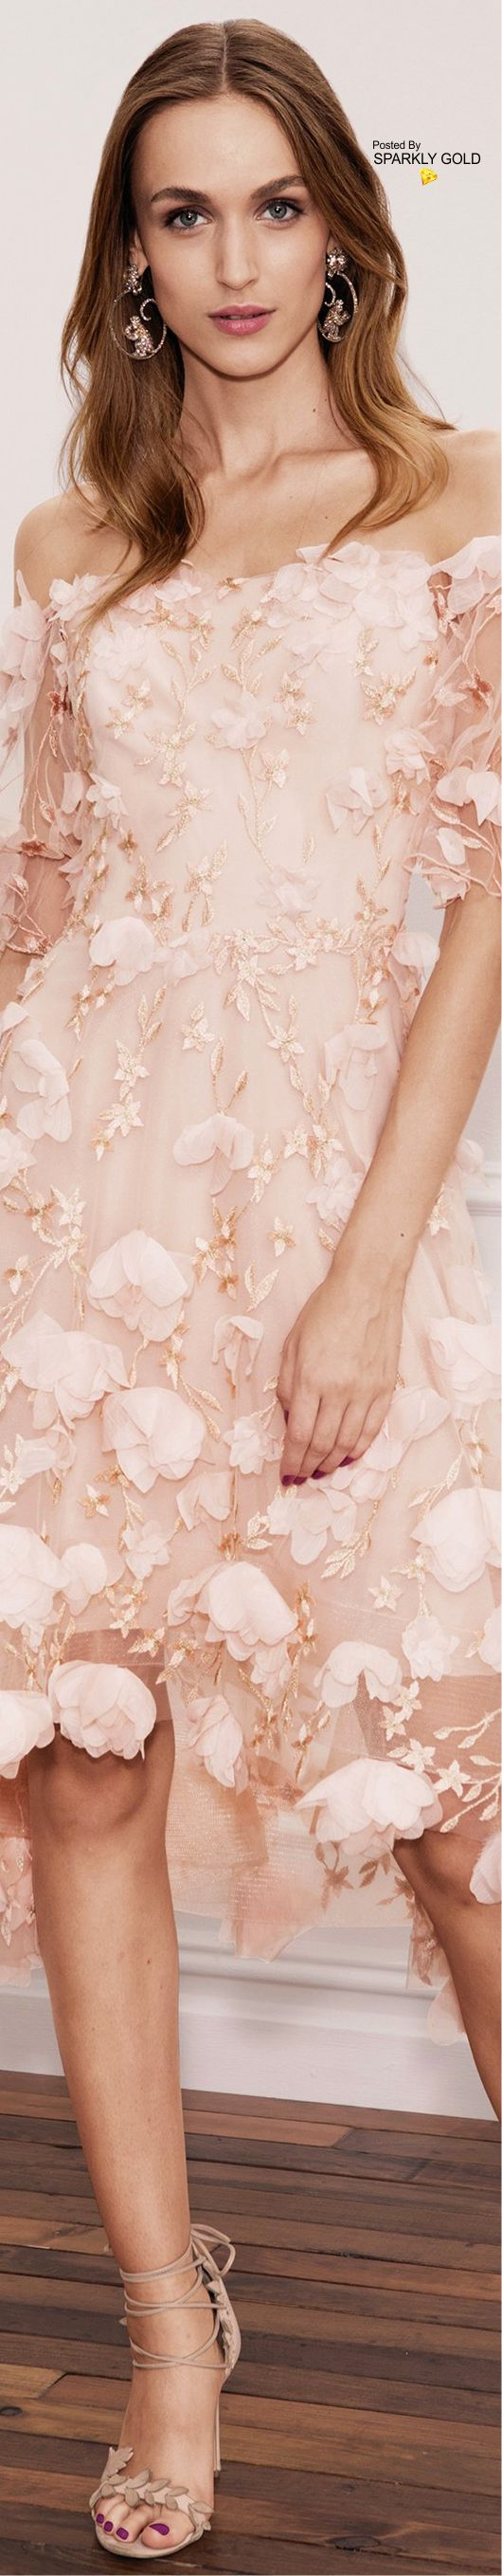 326 best A Certain Color: In The Pink, Whisper images on Pinterest ...